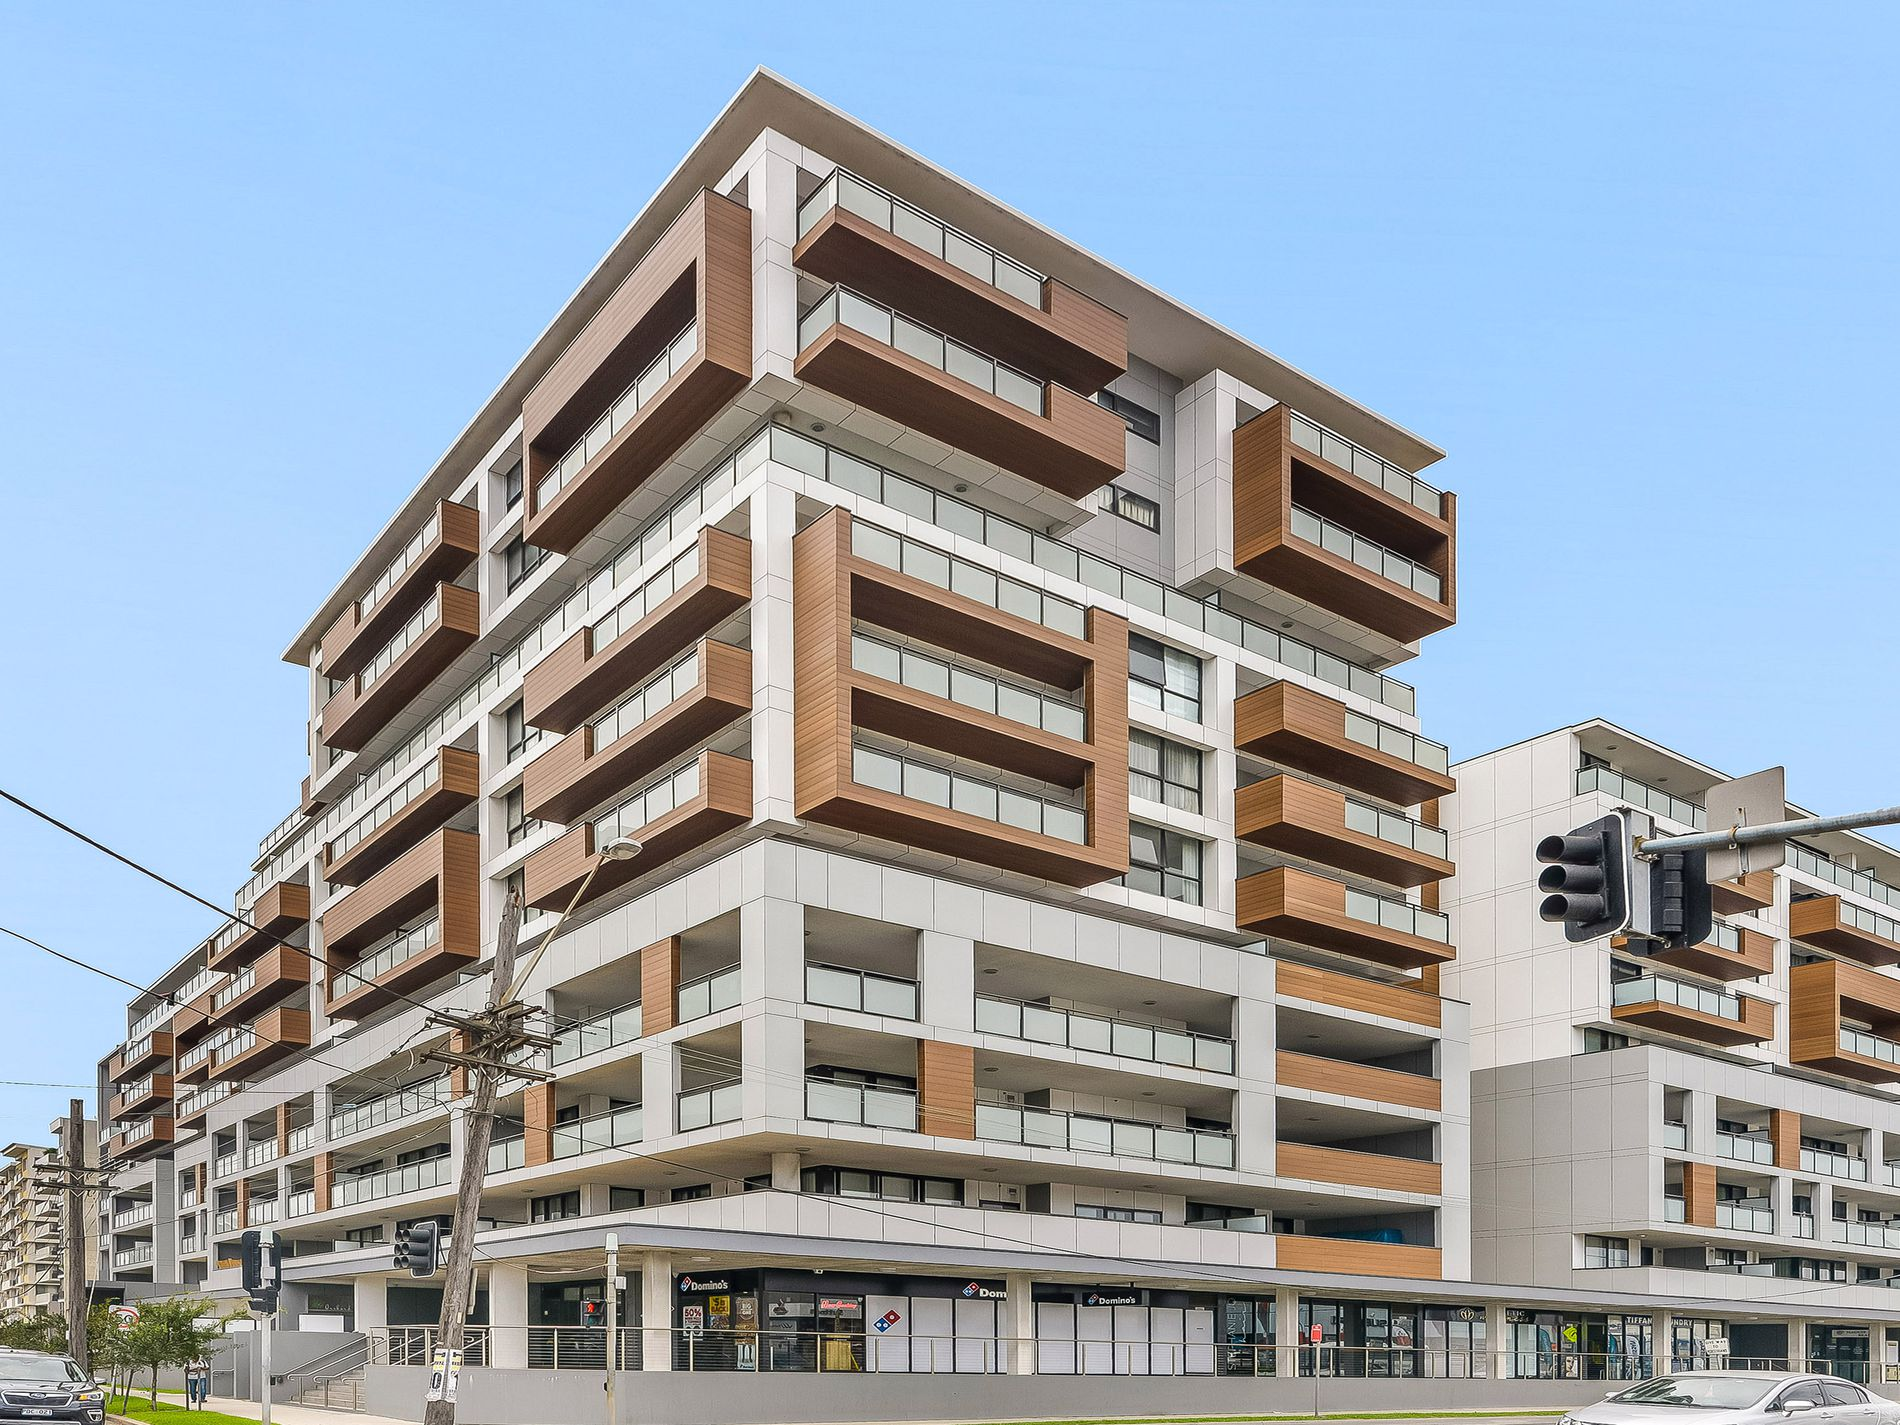 39 / 1 Gertrude St, Wolli Creek